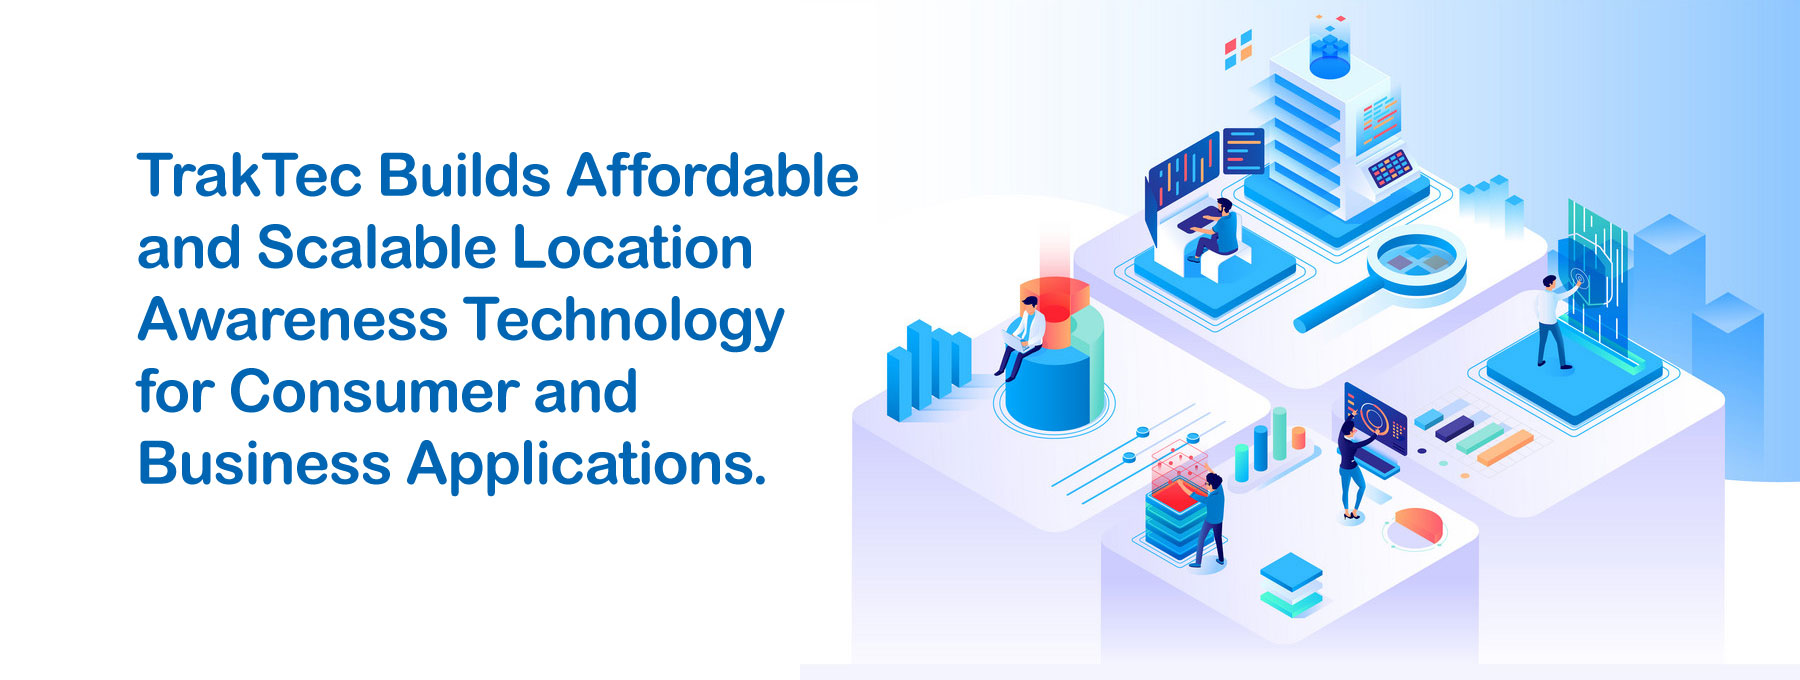 TrakTec About Us Location Awareness Technology